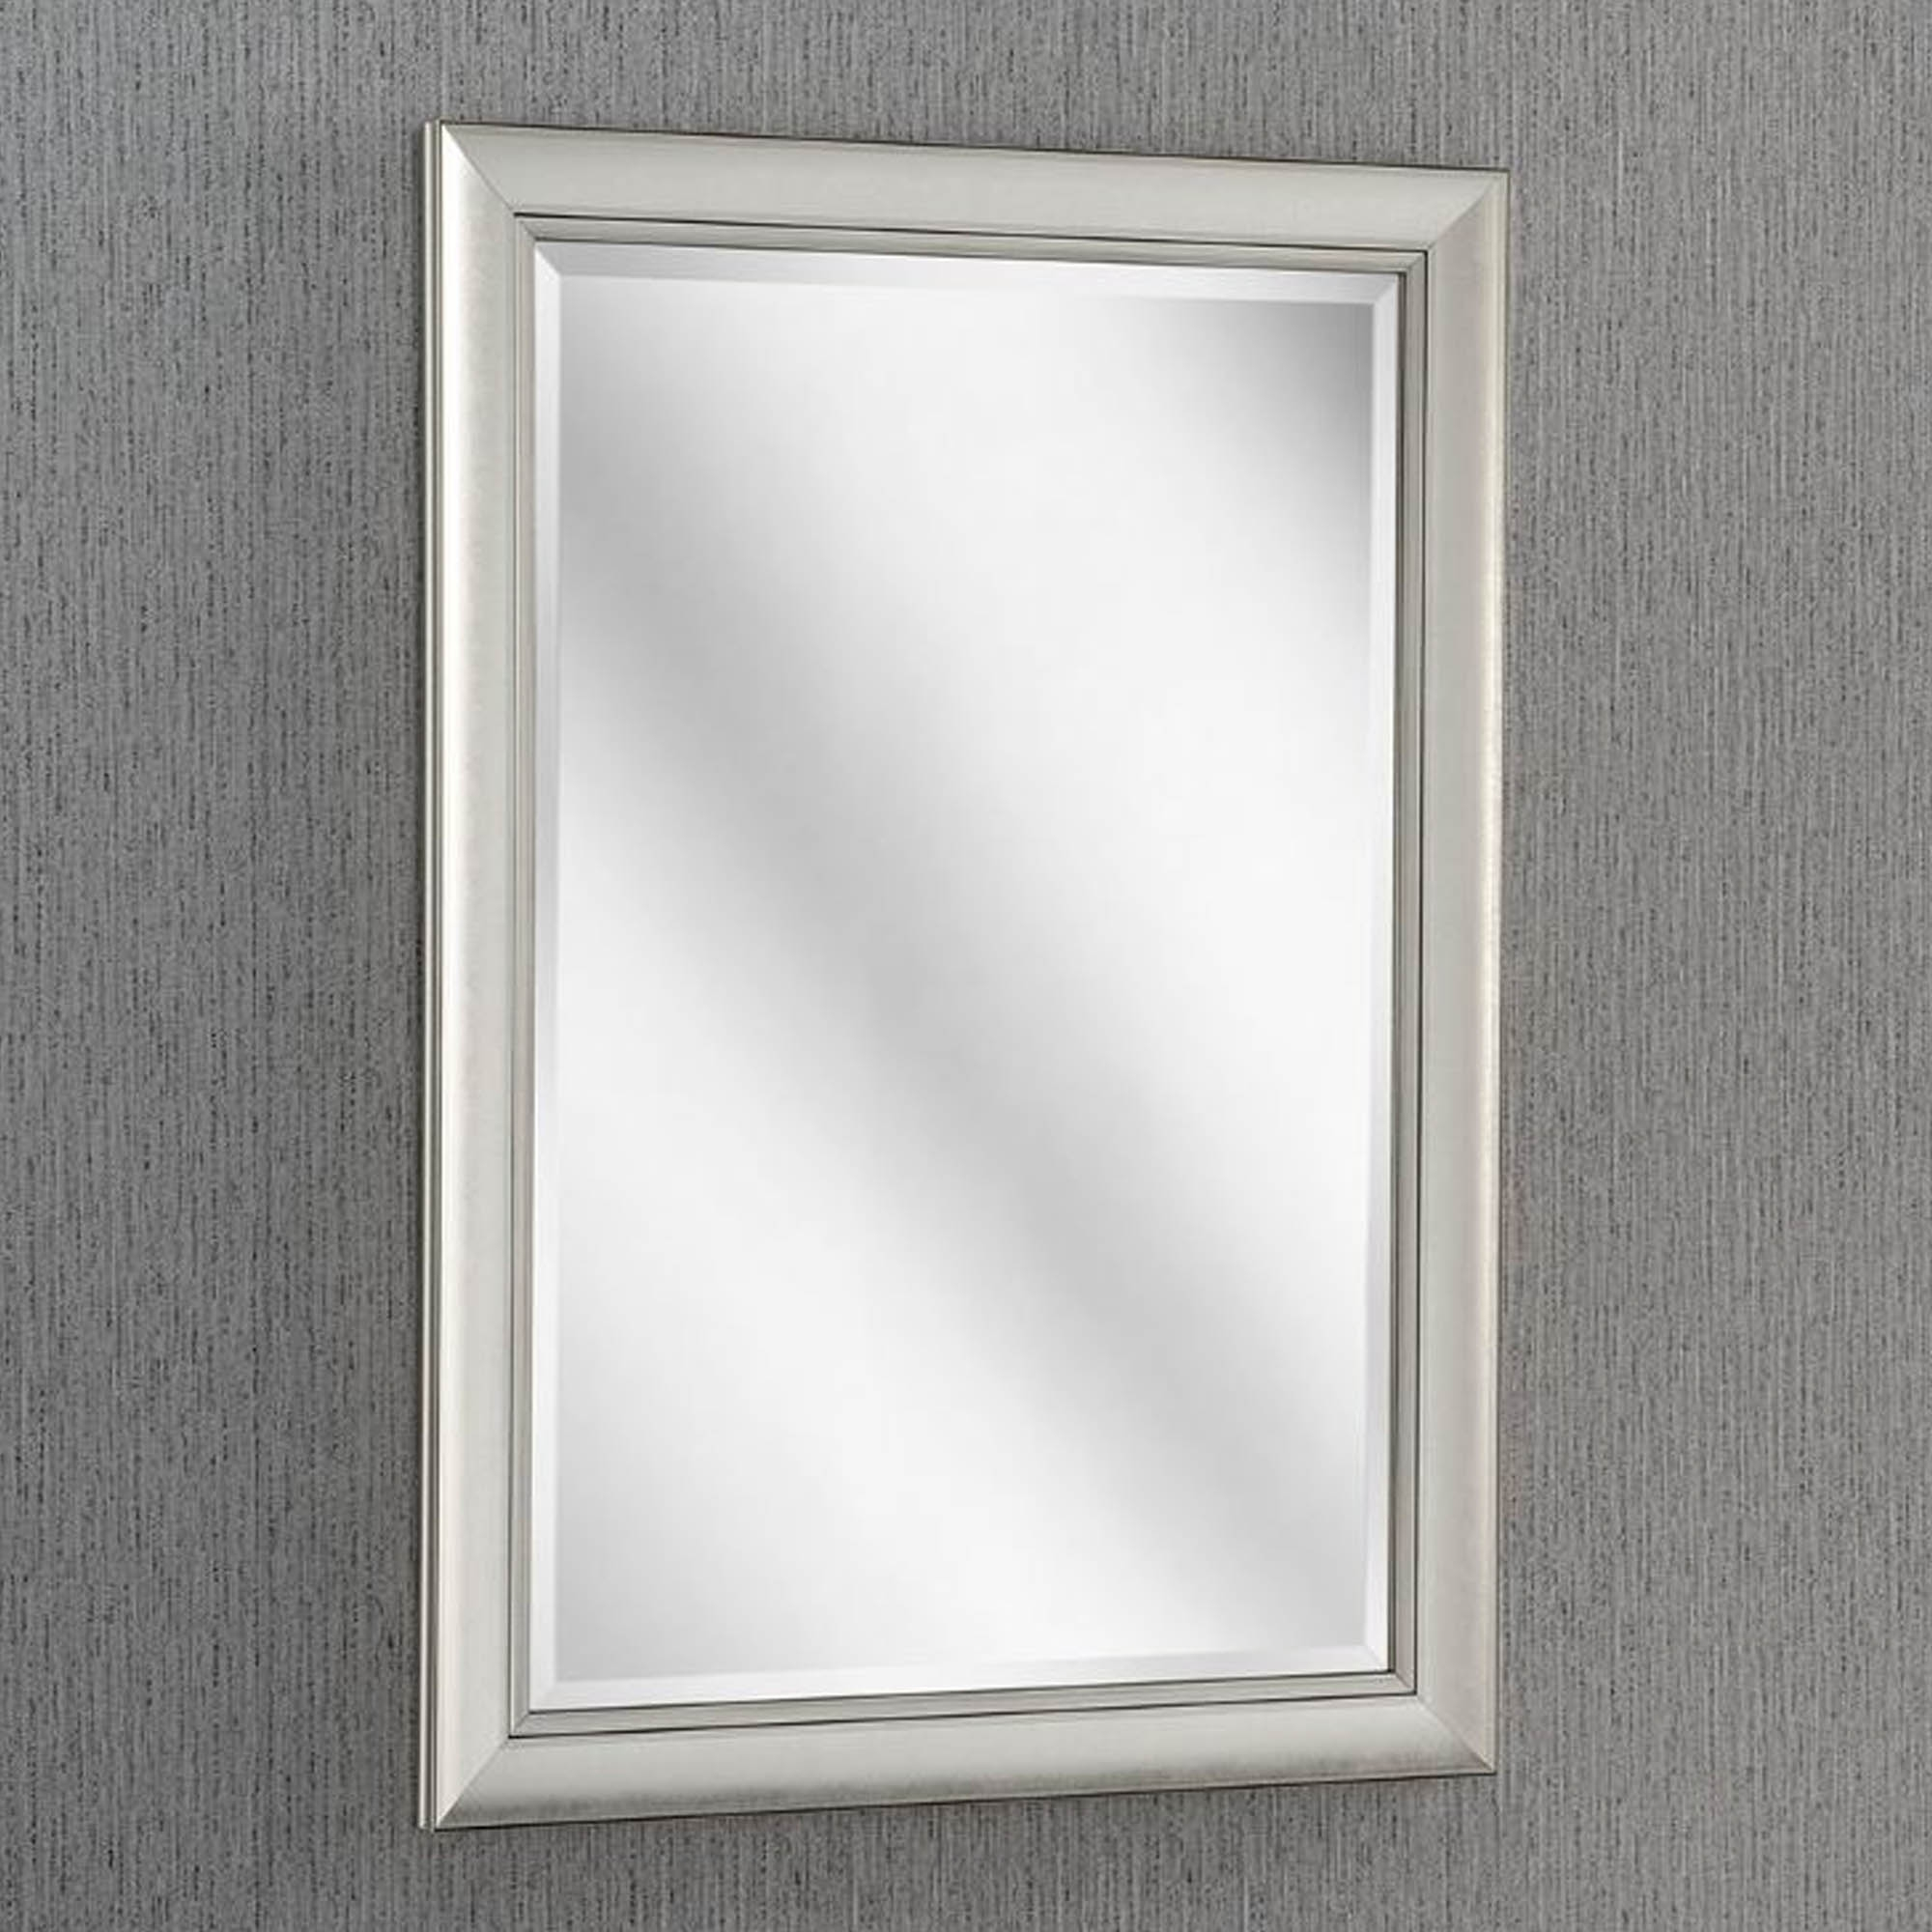 Bevelled Modern Silver Wall Mirror Homesdirect365